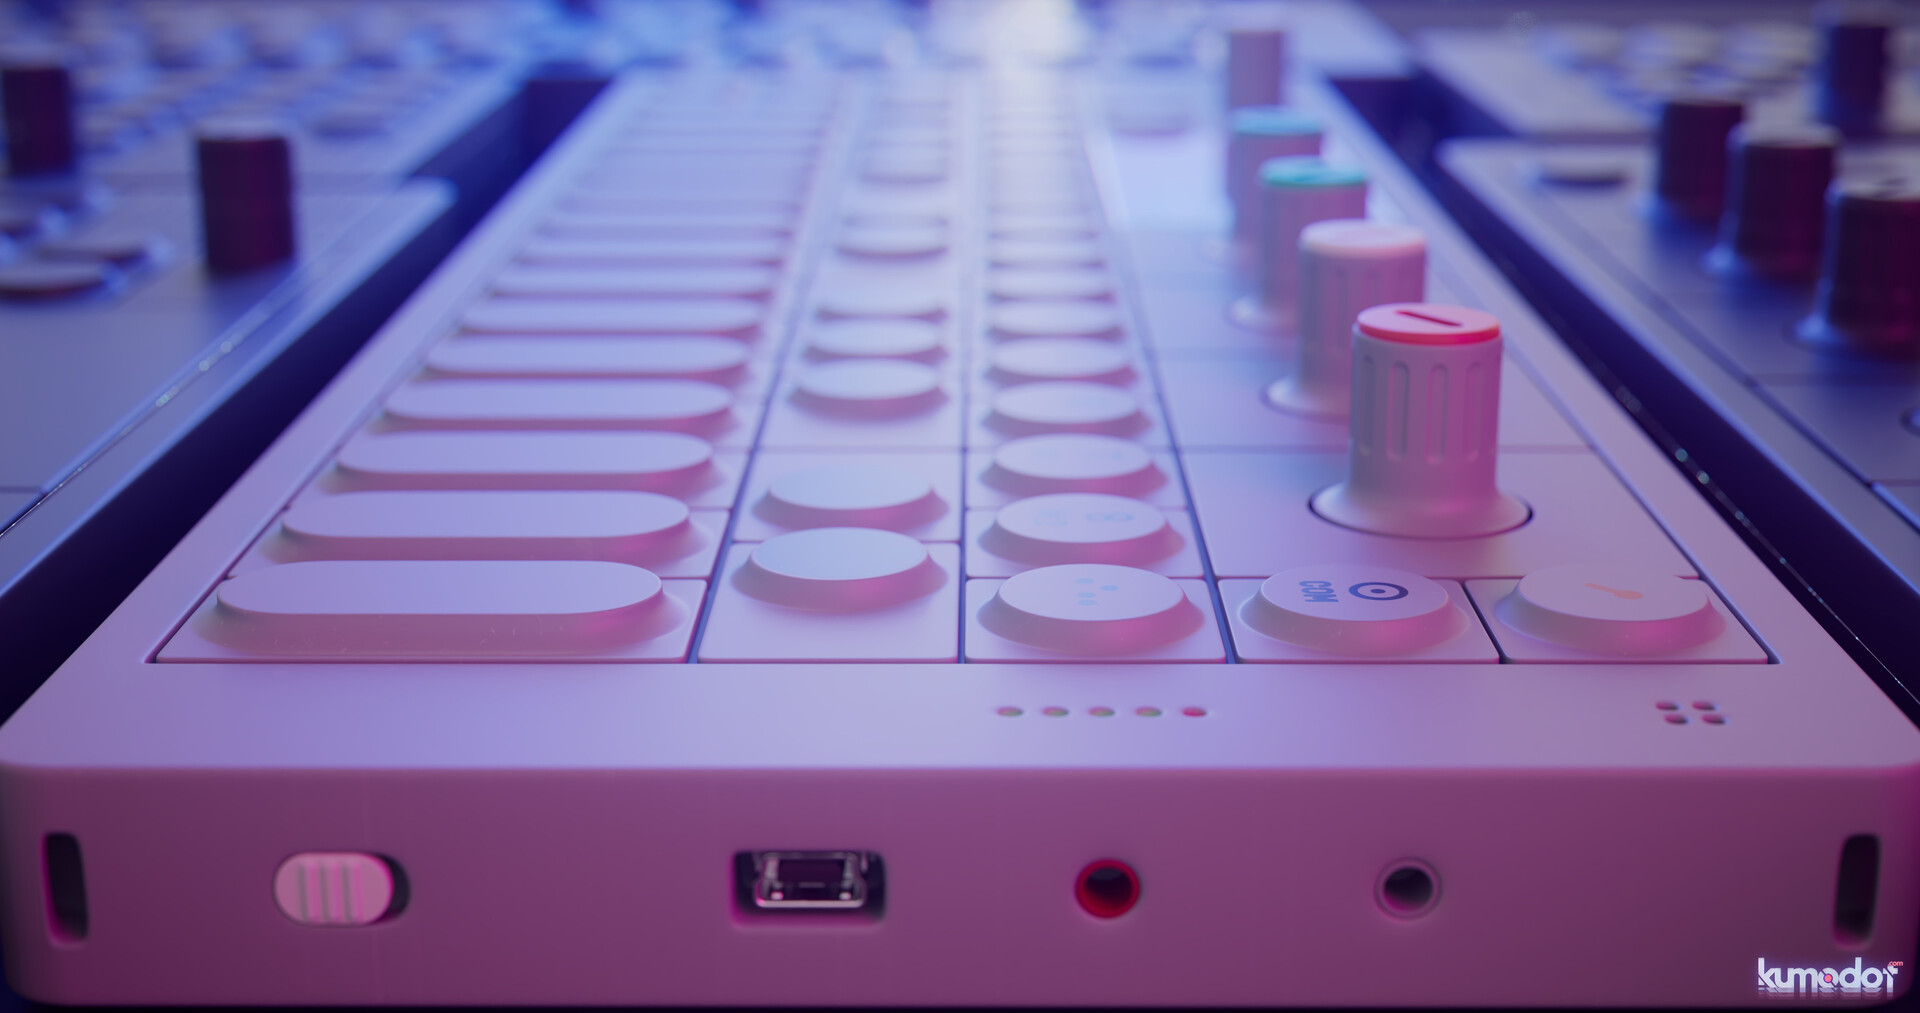 Side View of the unit. The only thing missing is the texture (text label) of Op-1 logo.